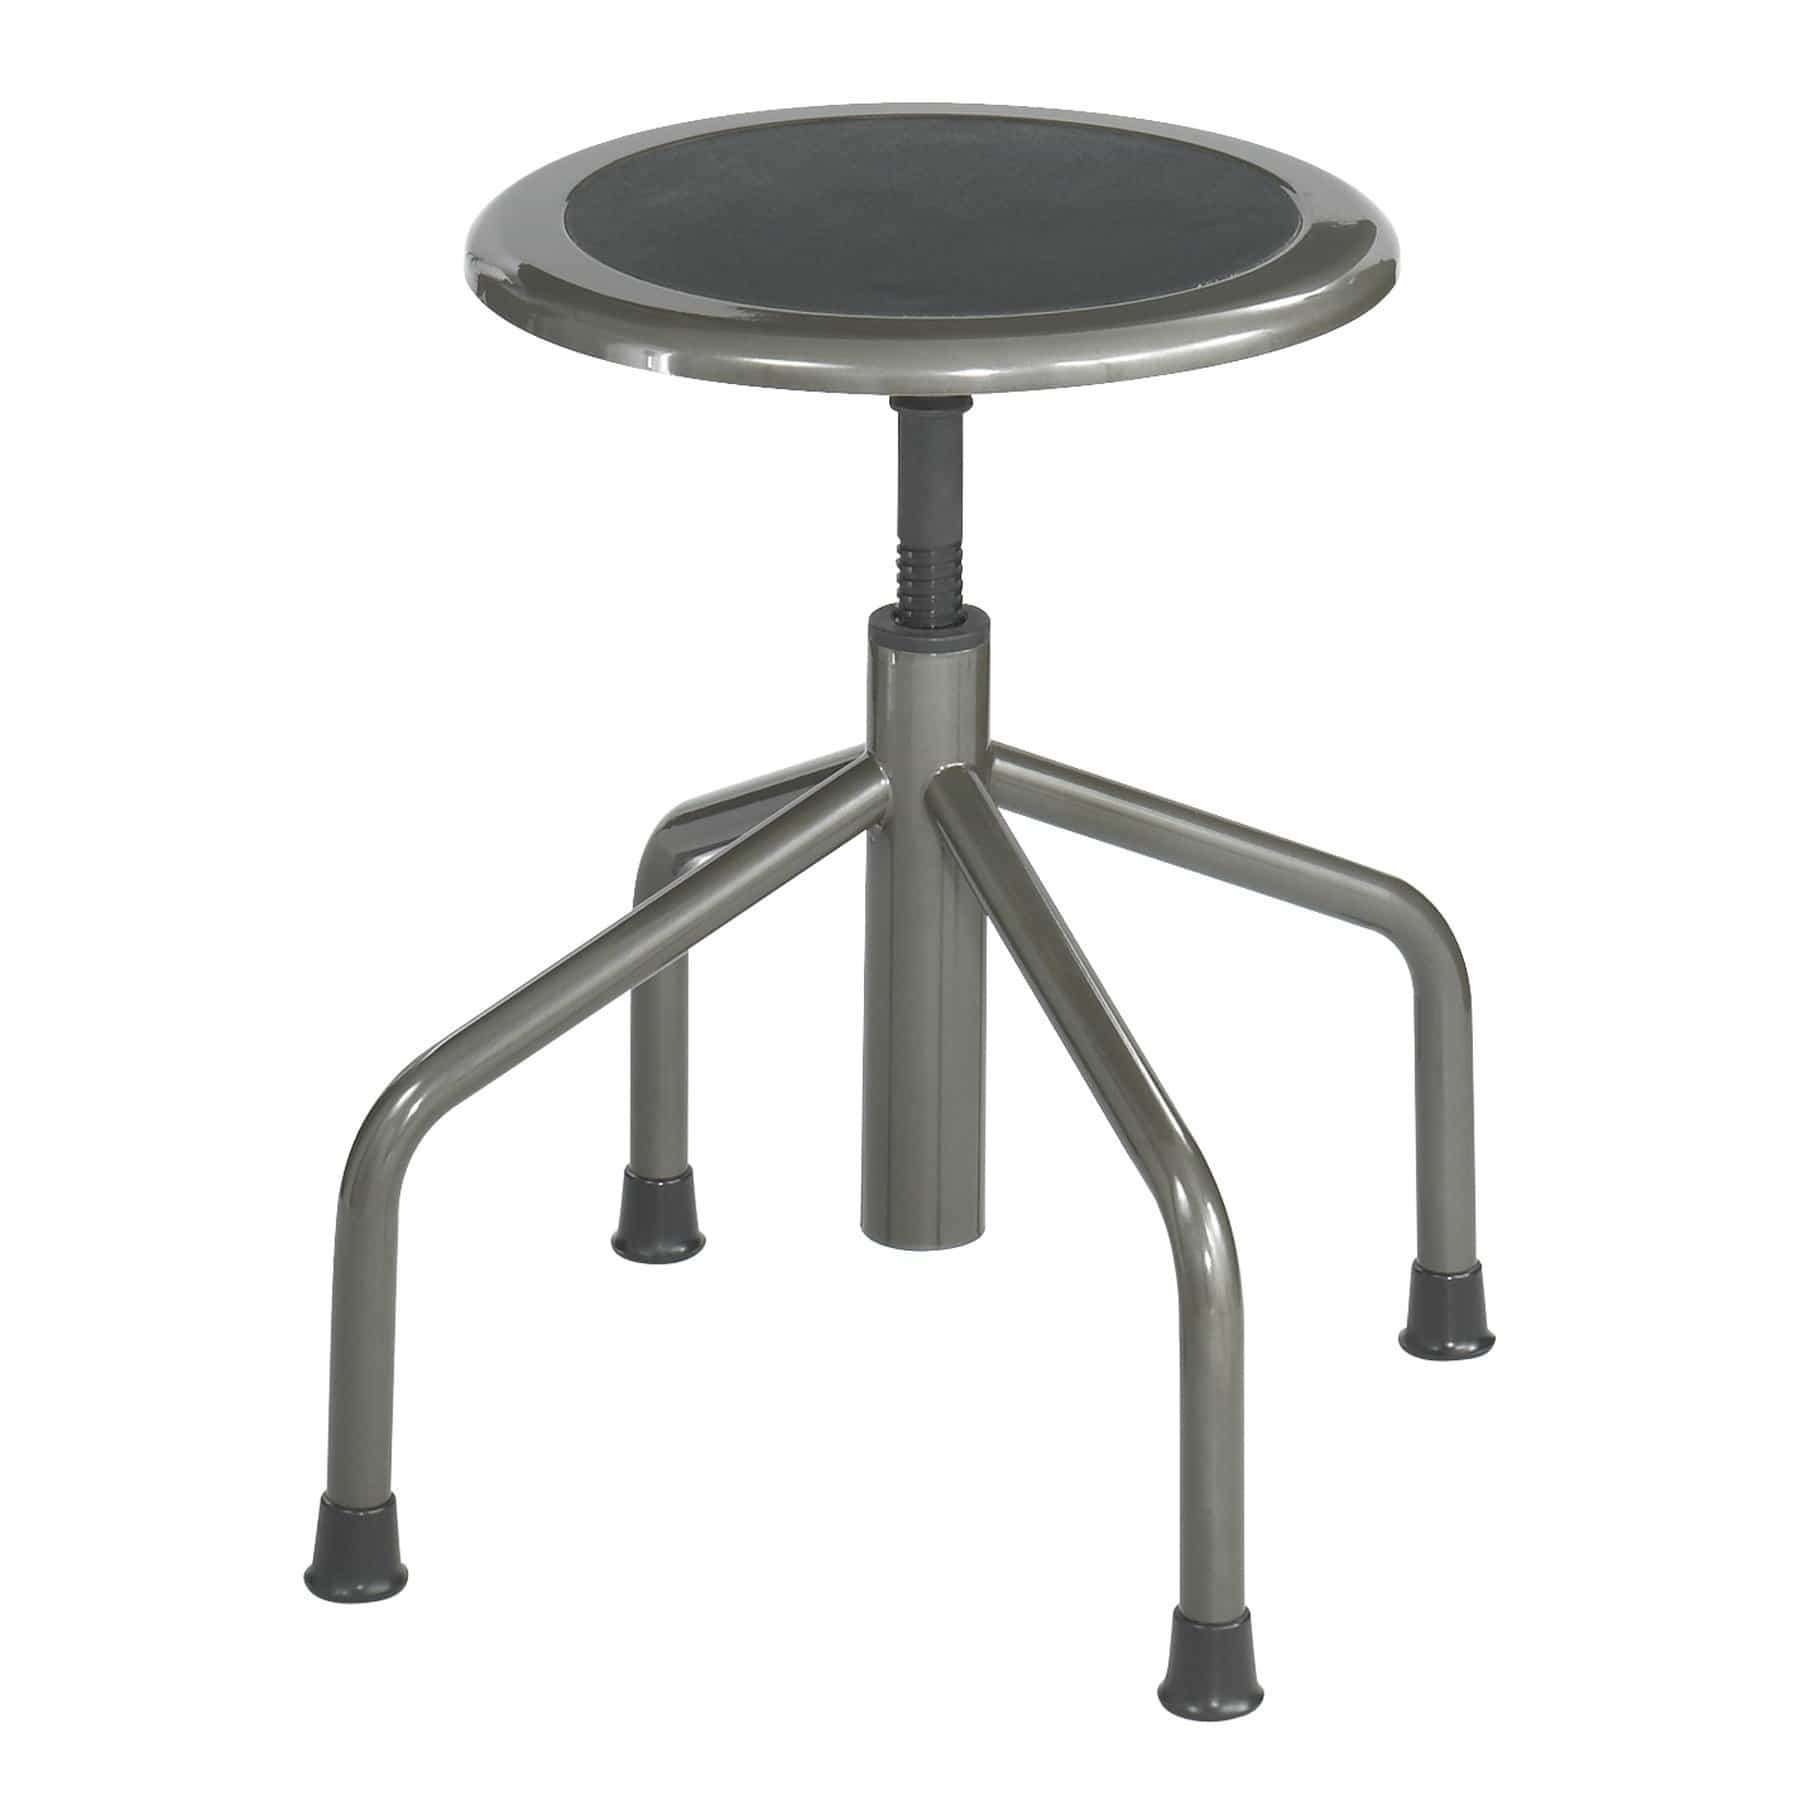 bedinhome - Industrial Seating Diesel Pewter Low Base Steel frame Stool Without Back - Safco - Low Base Stool